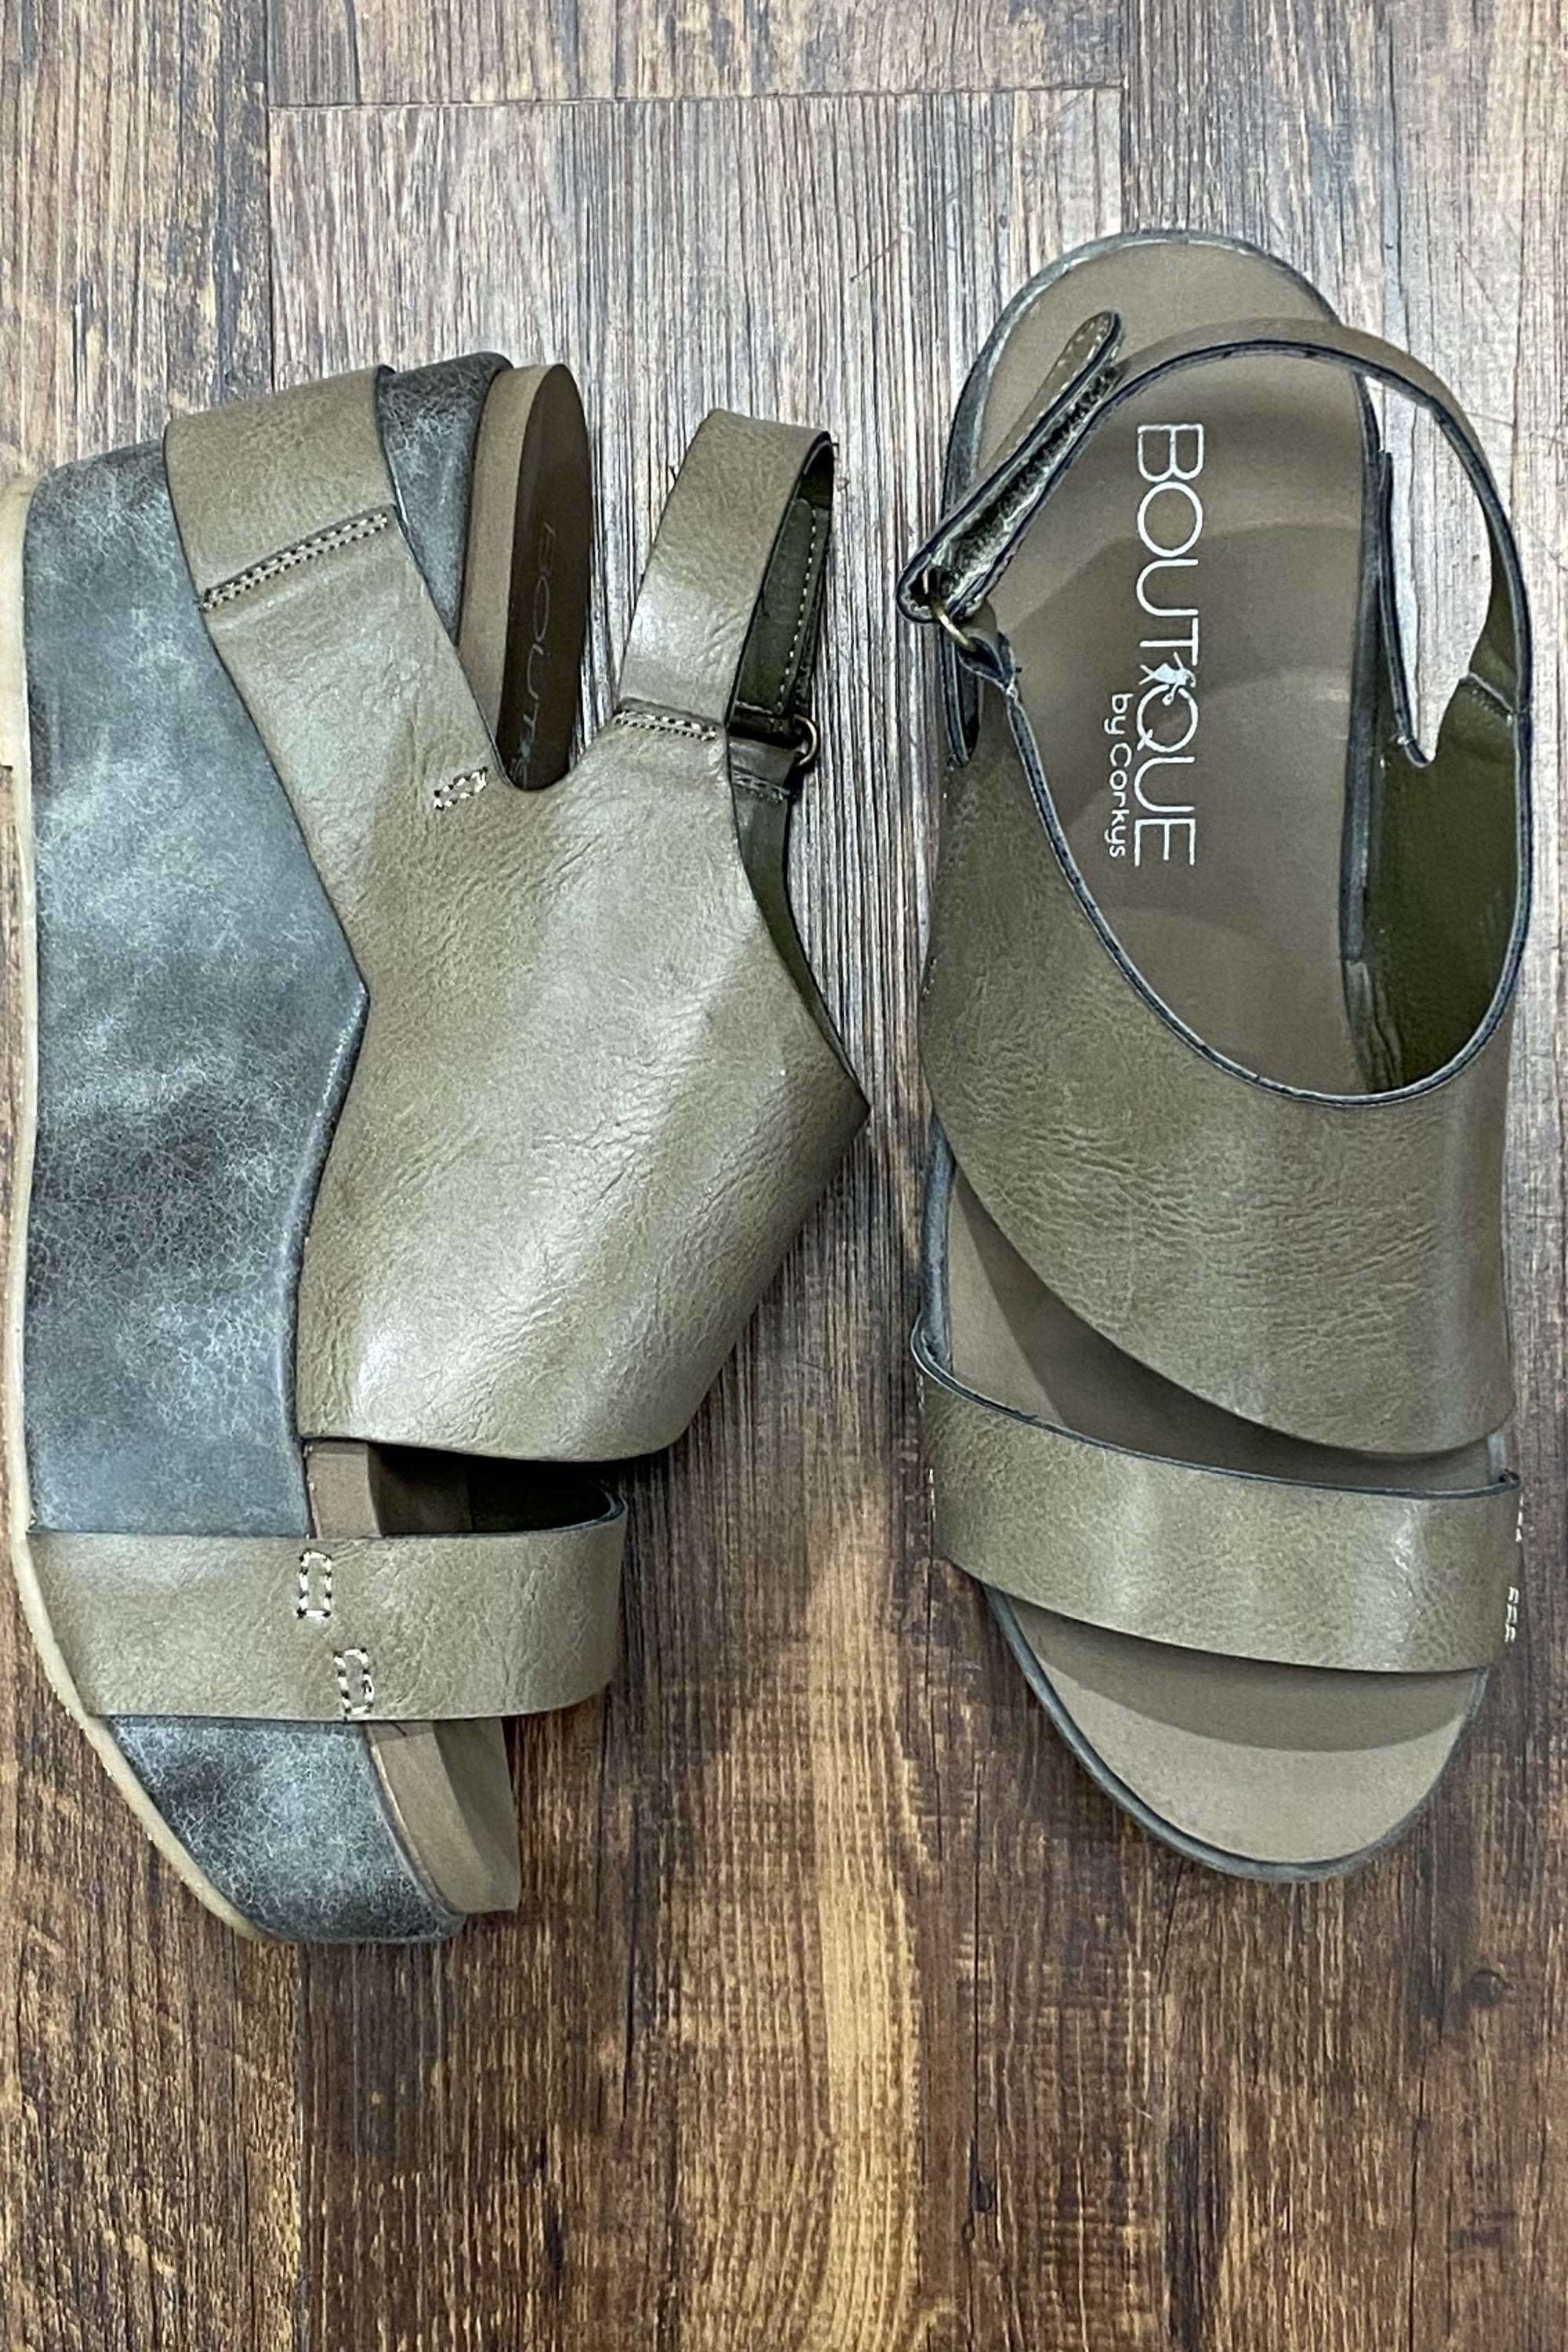 Pismo Wedge SHOES K.Lane's Boutique